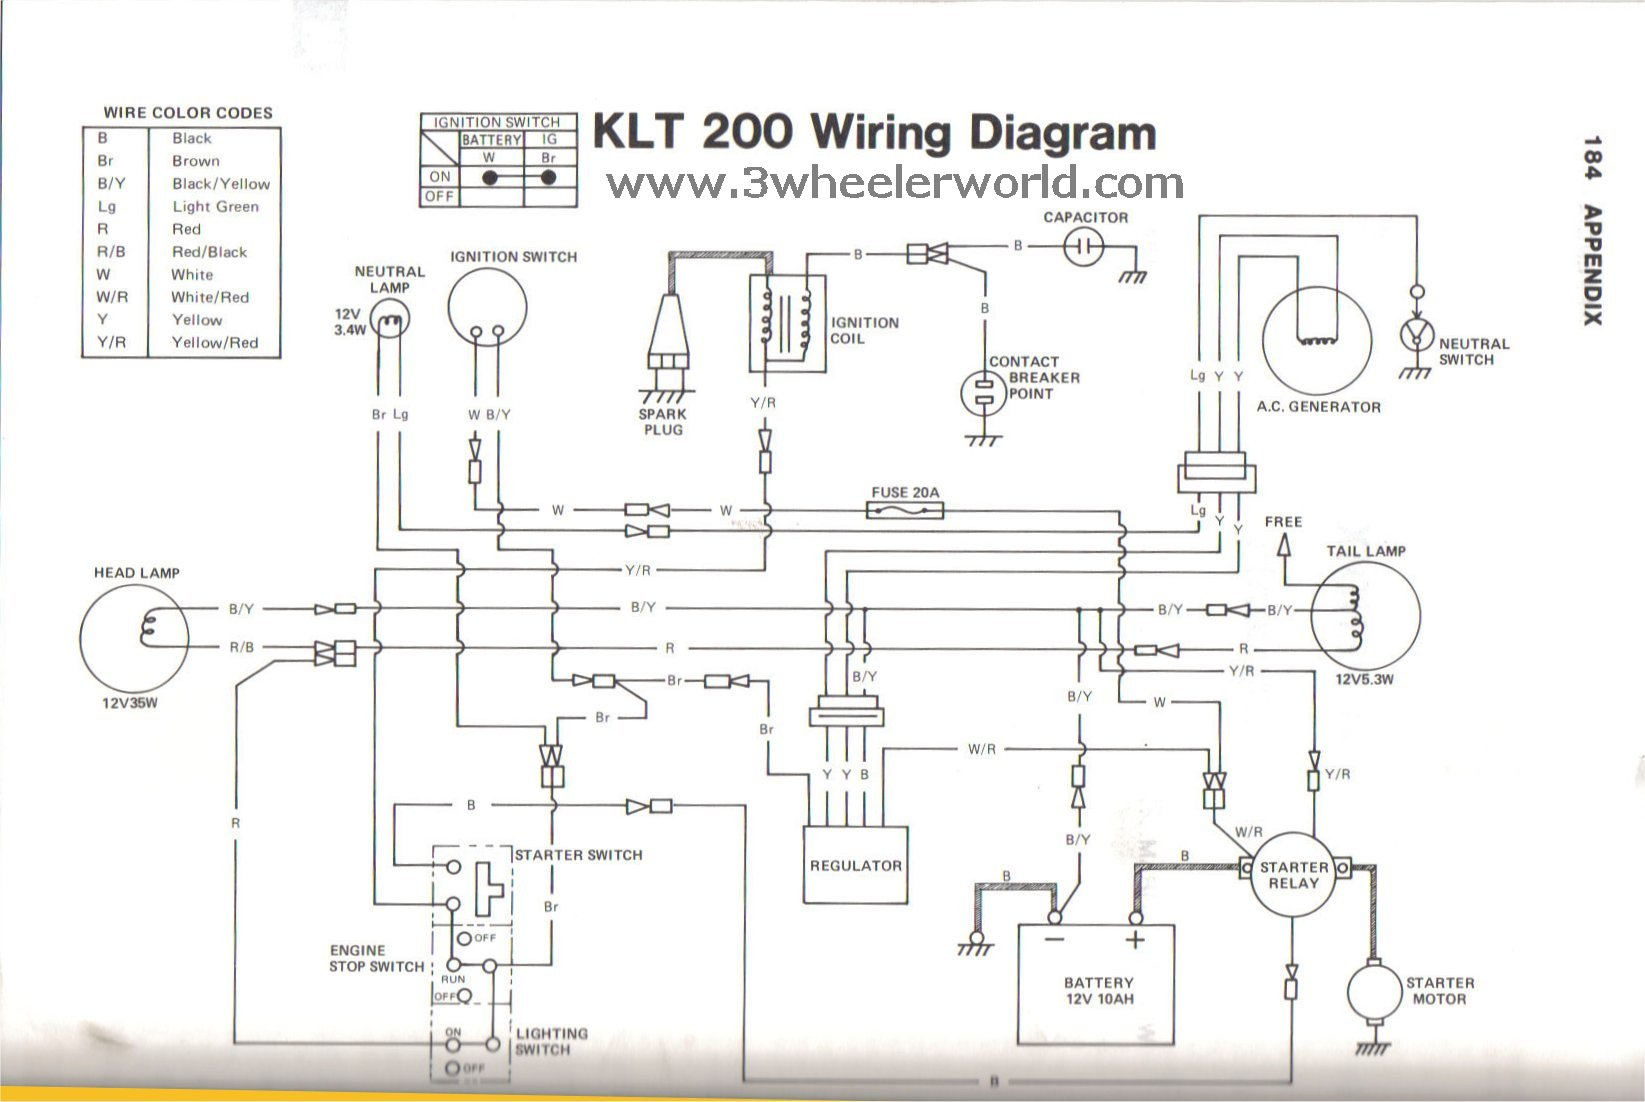 KLT200WiringDiagram1 3 wheeler world tech help kawasaki wiring diagrams 2006 ninja 250 wiring diagram at reclaimingppi.co